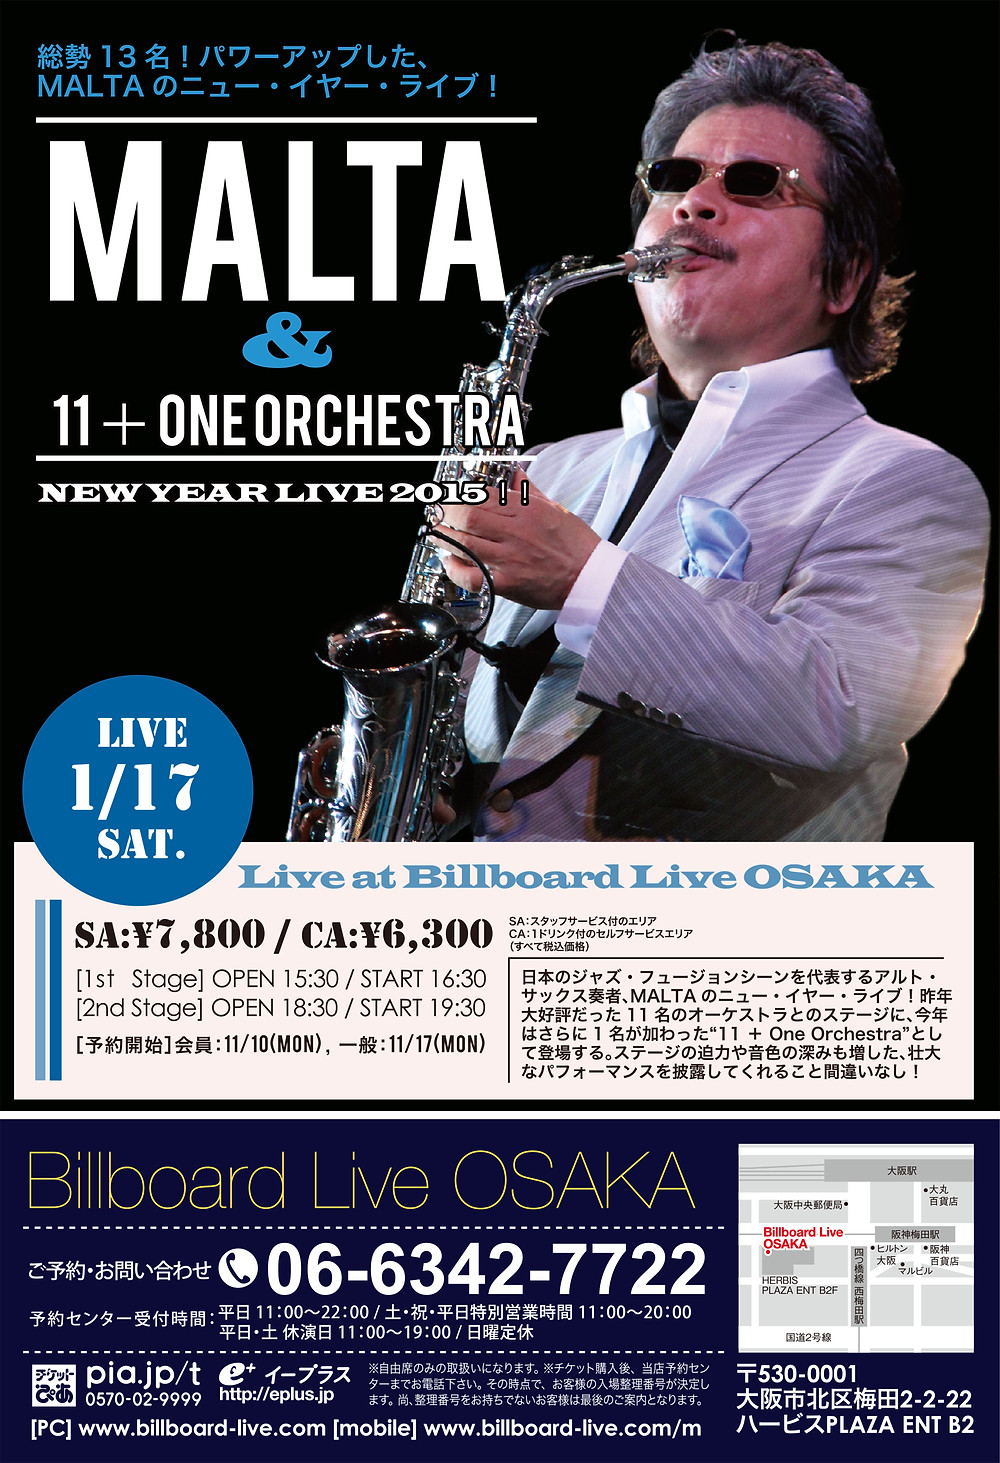 2015BillboardLiveOSAKAmalta.jpg